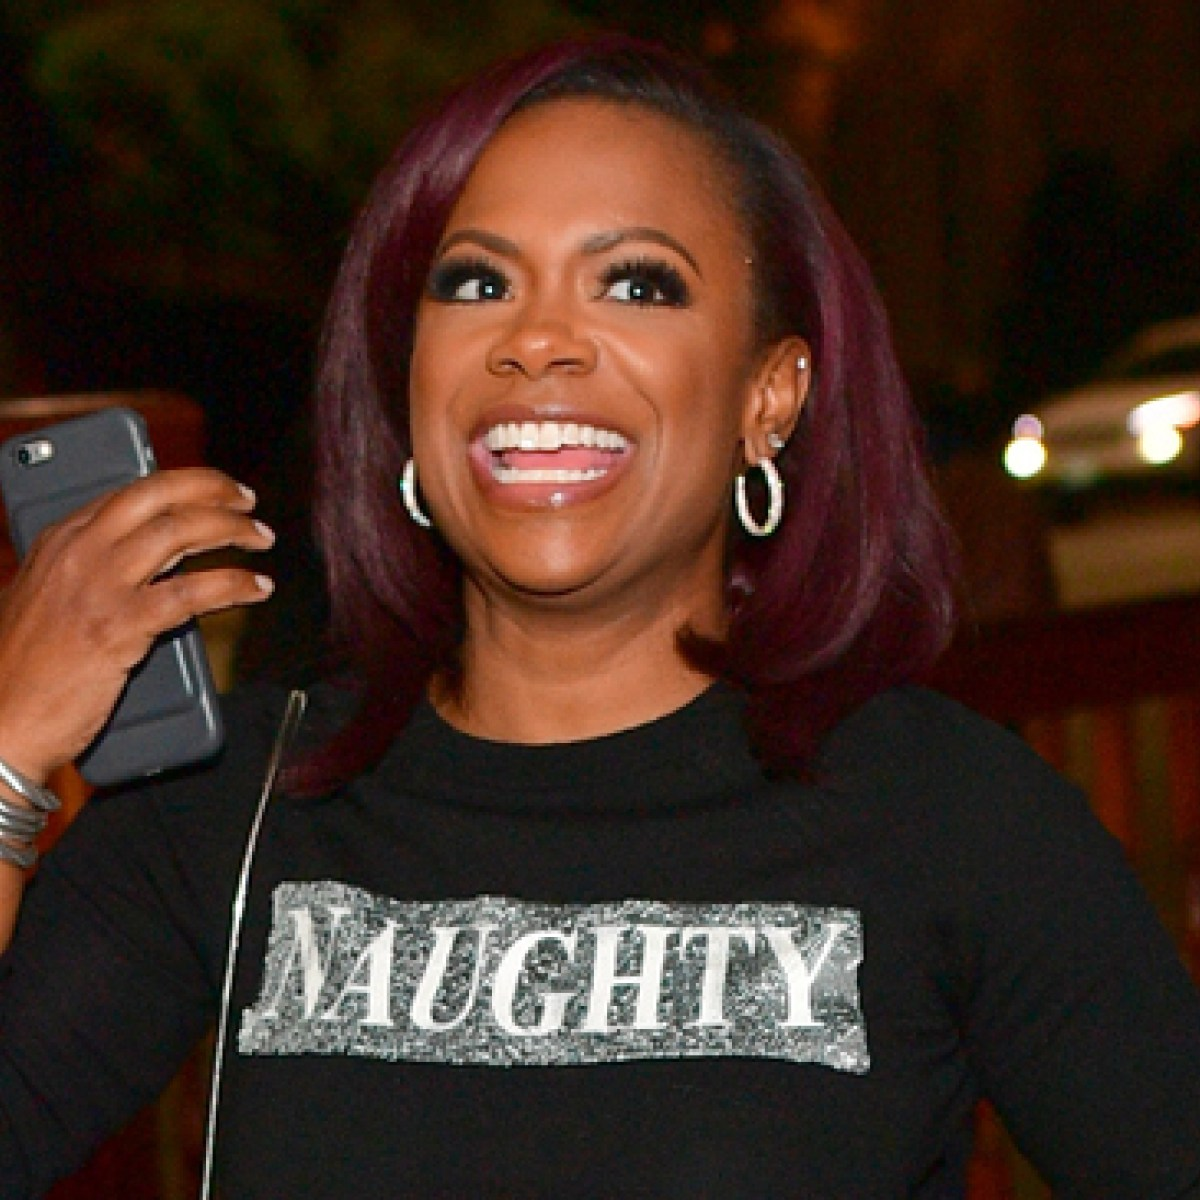 Kandi Burruss' Recent Photo At Clive Davis Pre Grammy Party From A Few Years Ago Has Fans In Awe